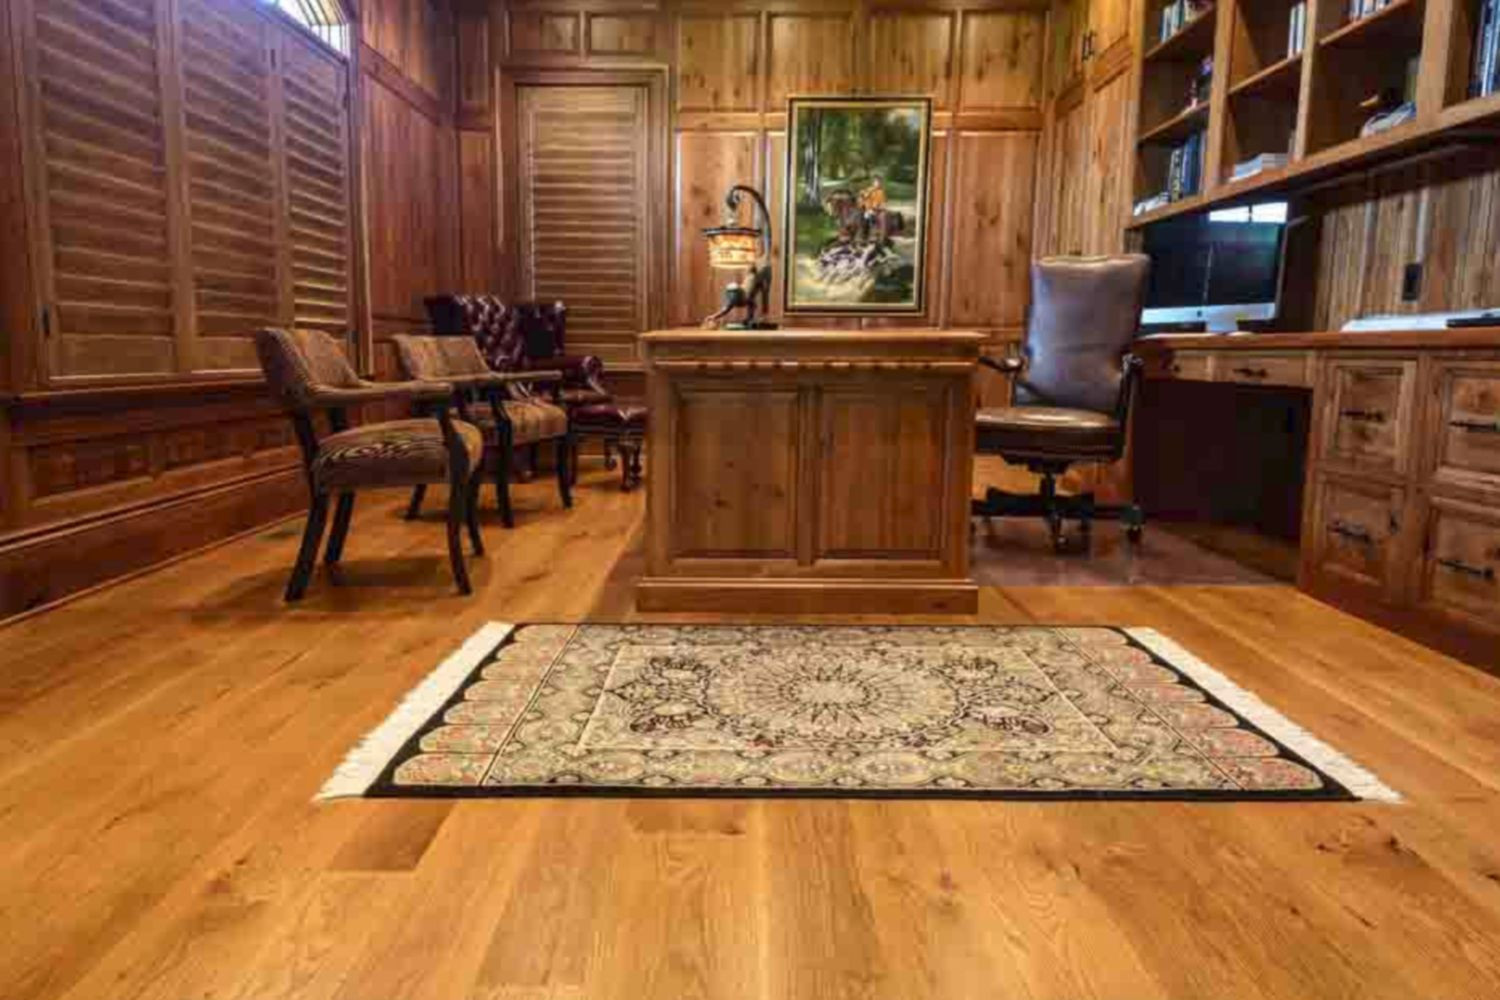 Lowes Canada Hardwood Flooring Sale Of top 5 Brands for solid Hardwood Flooring Inside the Woods Company White Oak 1500 X 1000 56a49f6d5f9b58b7d0d7e1db